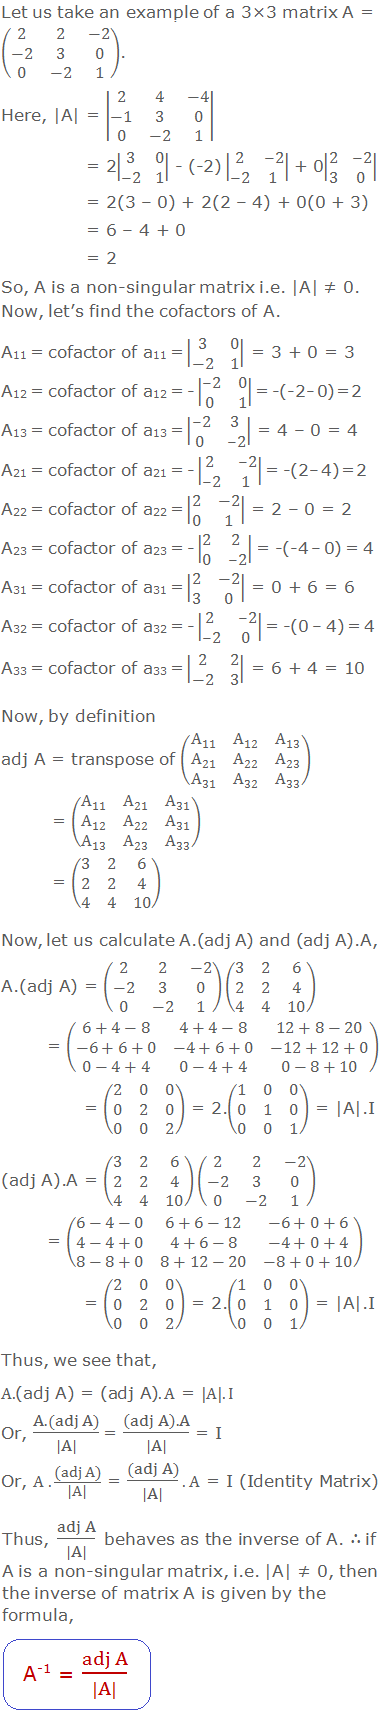 Let us take an example of a 3×3 matrix A = (■(2&2&-2@-2&3&0@0&-2&1)). Here,  A  =  ■(2&4&-4@-1&3&0@0&-2&1)         = 2 ■(3&0@-2&1)  - (-2)  ■(2&-2@-2&1)  + 0 ■(2&-2@3&0)                 = 2(3 – 0) + 2(2 – 4) + 0(0 + 3)                = 6 – 4 + 0                = 2 So, A is a non-singular matrix i.e.  A  ≠ 0. Now, let's find the cofactors of A. A11 = cofactor of a11 =  ■(3&0@-2&1)  = 3 + 0 = 3 A12 = cofactor of a12 = -  ■(-2&0@0&1)  = -(-2 – 0) = 2 A13 = cofactor of a13 =  ■(-2&3@0&-2)  = 4 – 0 = 4 A21 = cofactor of a21 = -  ■(2&-2@-2&1)  = -(2 – 4) = 2 A22 = cofactor of a22 =  ■(2&-2@0&1)  = 2 – 0 = 2 A23 = cofactor of a23 = -  ■(2&2@0&-2)  = -(-4 – 0) = 4 A31 = cofactor of a31 =  ■(2&-2@3&0)  = 0 + 6 = 6 A32 = cofactor of a32 = -  ■(2&-2@-2&0)  = -(0 – 4) = 4 A33 = cofactor of a33 =  ■(2&2@-2&3)  = 6 + 4 = 10 Now, by definition adj A = transpose of (■(A_11&A_12&A_13@A_21&A_22&A_23@A_31&A_32&A_33 ))          = (■(A_11&A_21&A_31@A_12&A_22&A_31@A_13&A_23&A_33 ))           = (■(3&2&6@2&2&4@4&4&10)) Now, let us calculate A.(adj A) and (adj A).A, A.(adj A) = (■(2&2&-2@-2&3&0@0&-2&1))(■(3&2&6@2&2&4@4&4&10))               = (■(6+4-8&4+4-8&12+8-20@-6+6+0&-4+6+0&-12+12+0@0-4+4&0-4+4&0-8+10))               = (■(2&0&0@0&2&0@0&0&2)) = 2.(■(1&0&0@0&1&0@0&0&1)) =  A .I (adj A).A = (■(3&2&6@2&2&4@4&4&10))(■(2&2&-2@-2&3&0@0&-2&1))               = (■(6-4-0&6+6-12&-6+0+6@4-4+0&4+6-8&-4+0+4@8-8+0&8+12-20&-8+0+10))               = (■(2&0&0@0&2&0@0&0&2)) = 2.(■(1&0&0@0&1&0@0&0&1)) =  A .I Thus, we see that,  A.(adj A) = (adj A).A =  A .I Or,  (A.(adj A))/( A )  = ((adj A).A)/( A ) = I Or,  A.(adj A)/( A ) = (adj A)/( A ).A = I (Identity Matrix) Thus,  (adj A)/( A )  behaves as the inverse of A. ∴ if A is a non-singular matrix, i.e.  A  ≠ 0, then the inverse of matrix A is given by the formula, A-1 = (adj A)/( A )